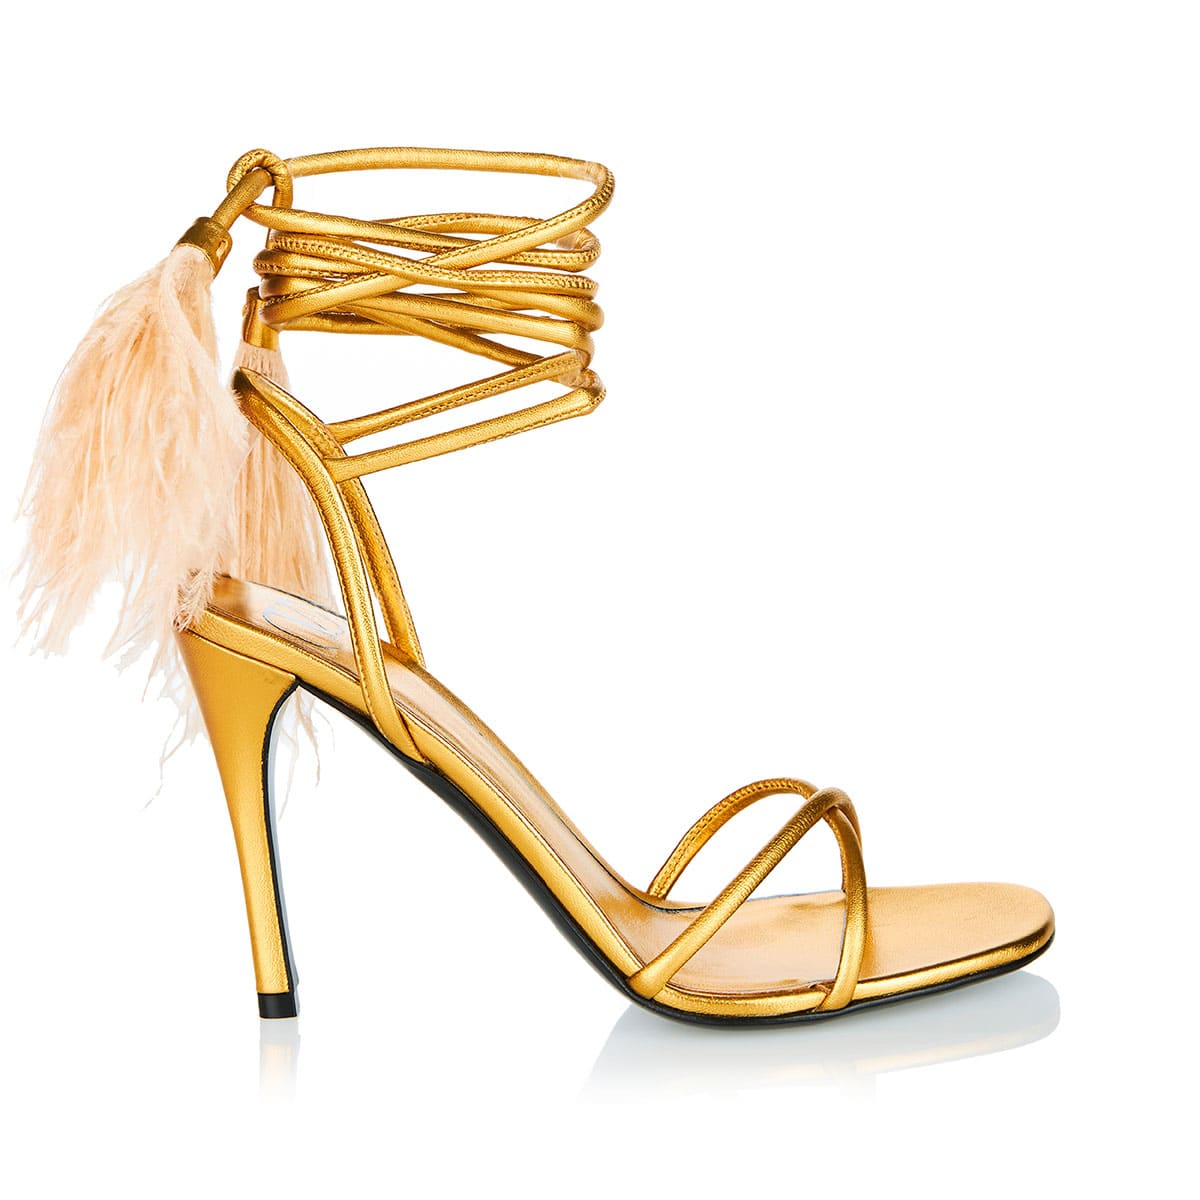 Upflair 100 feather-trimmed metallic sandals